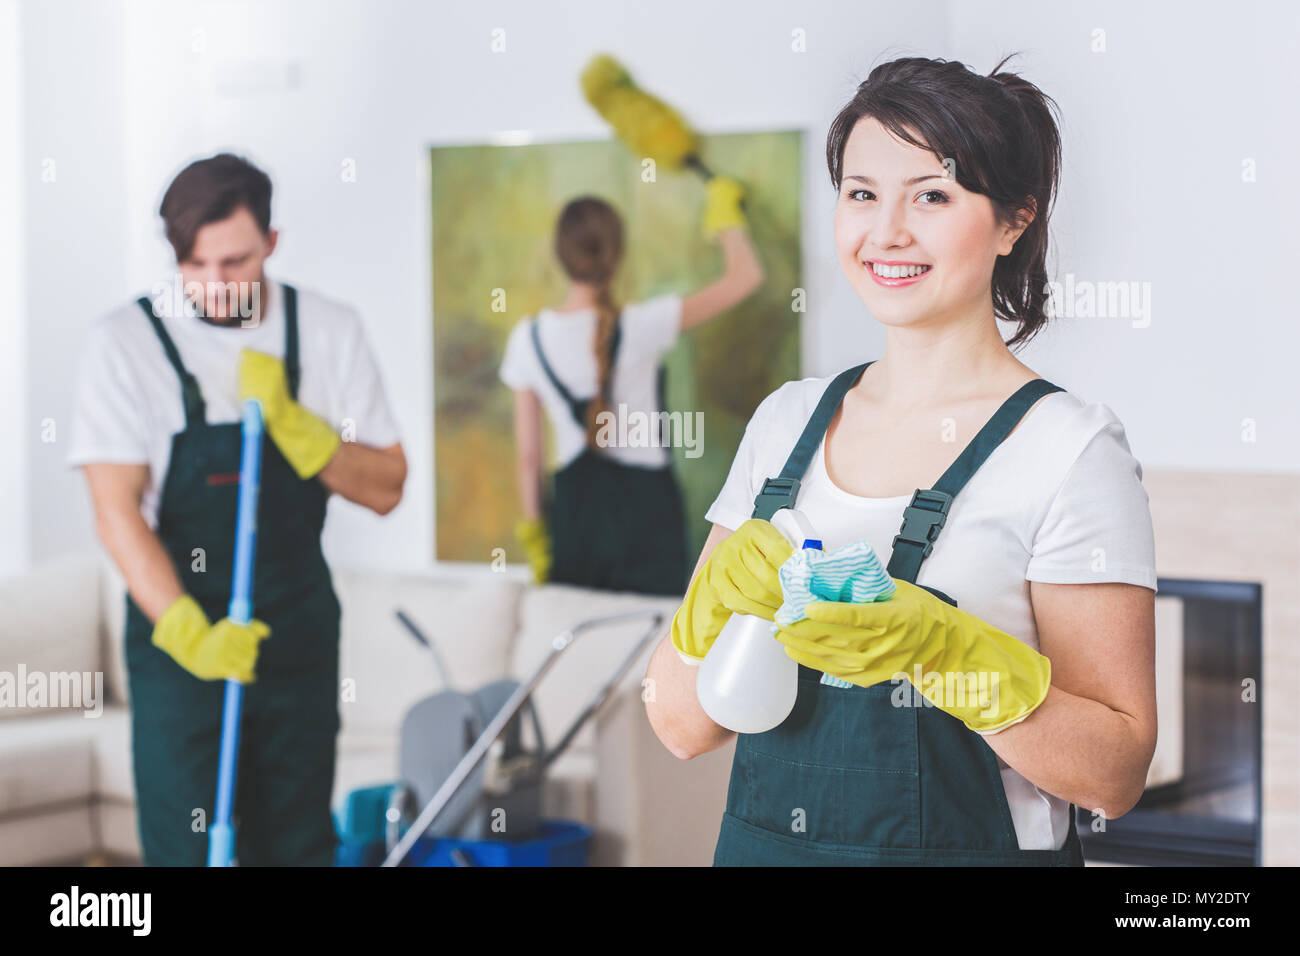 Group of young, hard-working professional cleaners in dirty apartment. Woman with cleaning solution and cloth against blurred background - Stock Image